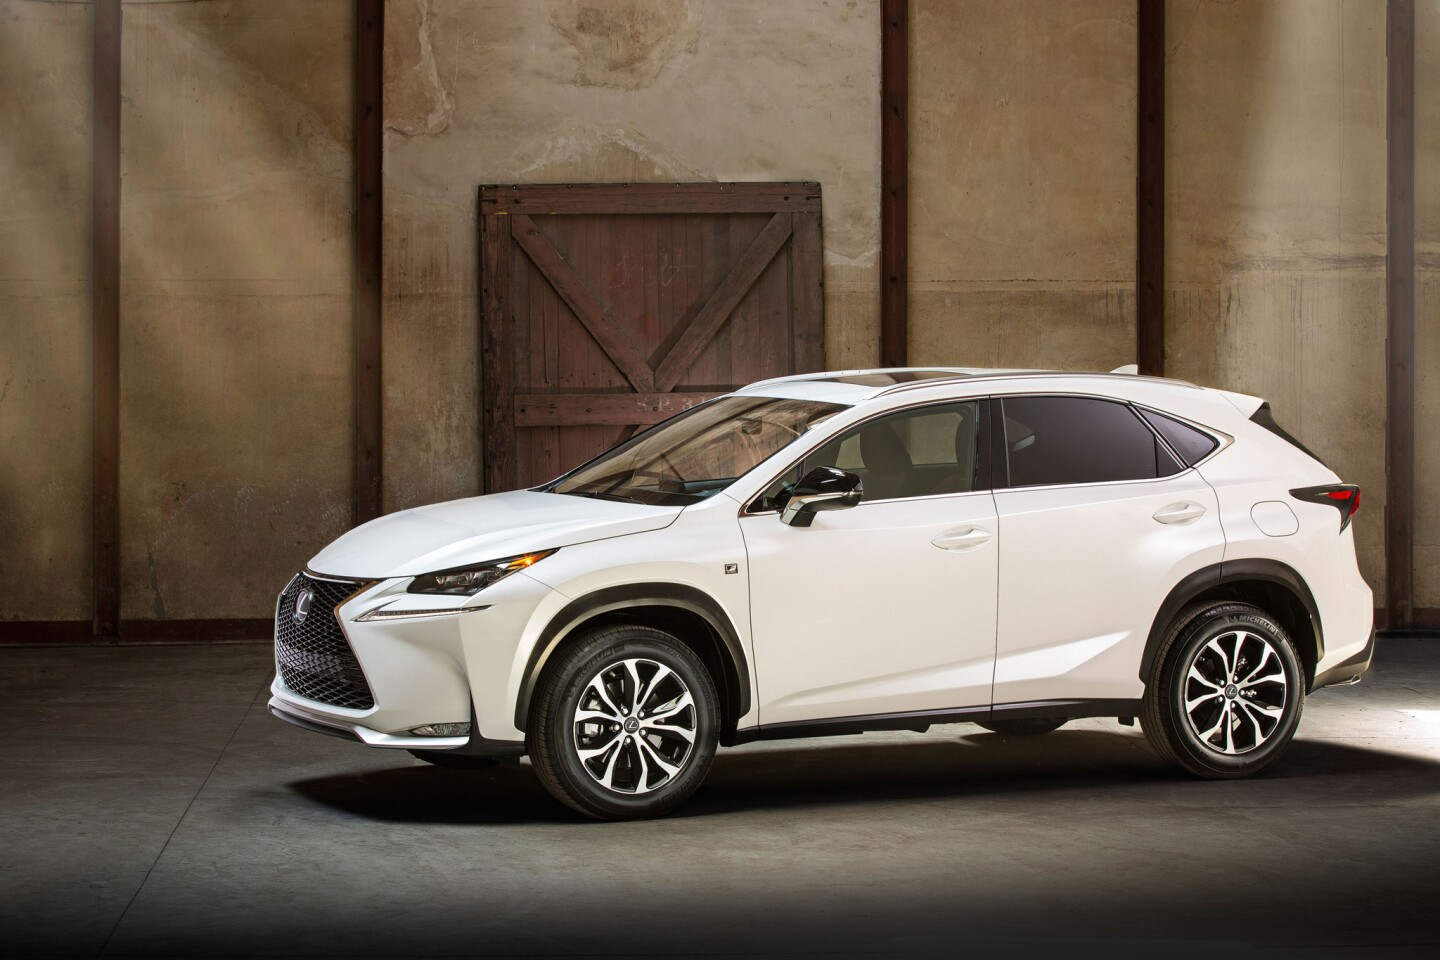 The Lexus NX compact crossover will come with either the first turbocharged engine the company has offered, or a four-cylinder hybrid. It slots below the popular RX crossover in the luxury brand's lineup.